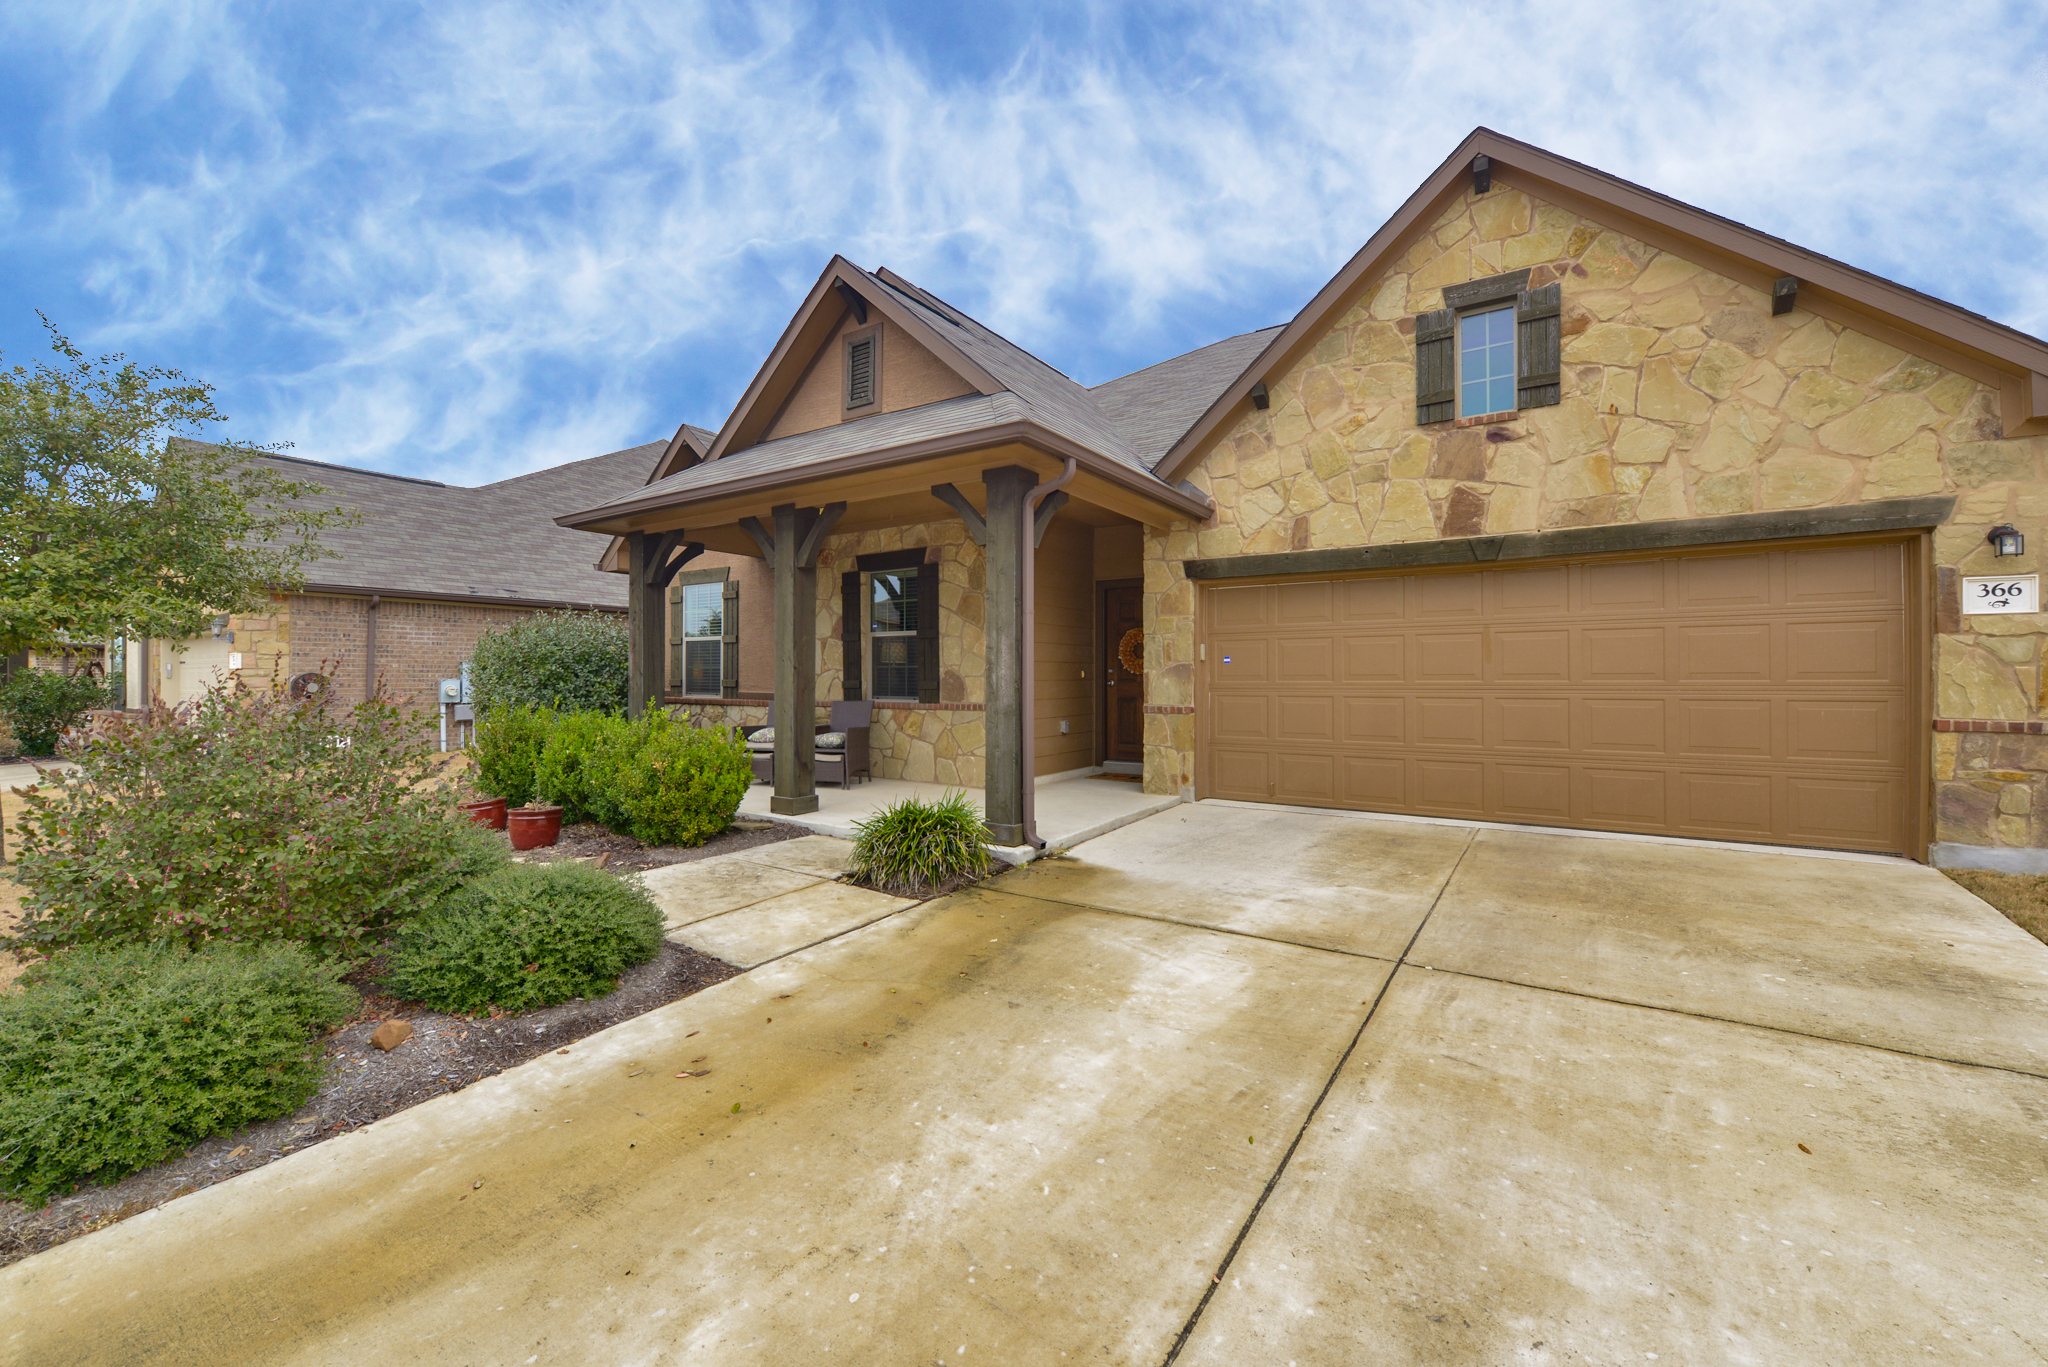 366 Pecan Meadows New Braunfels, TX 78130